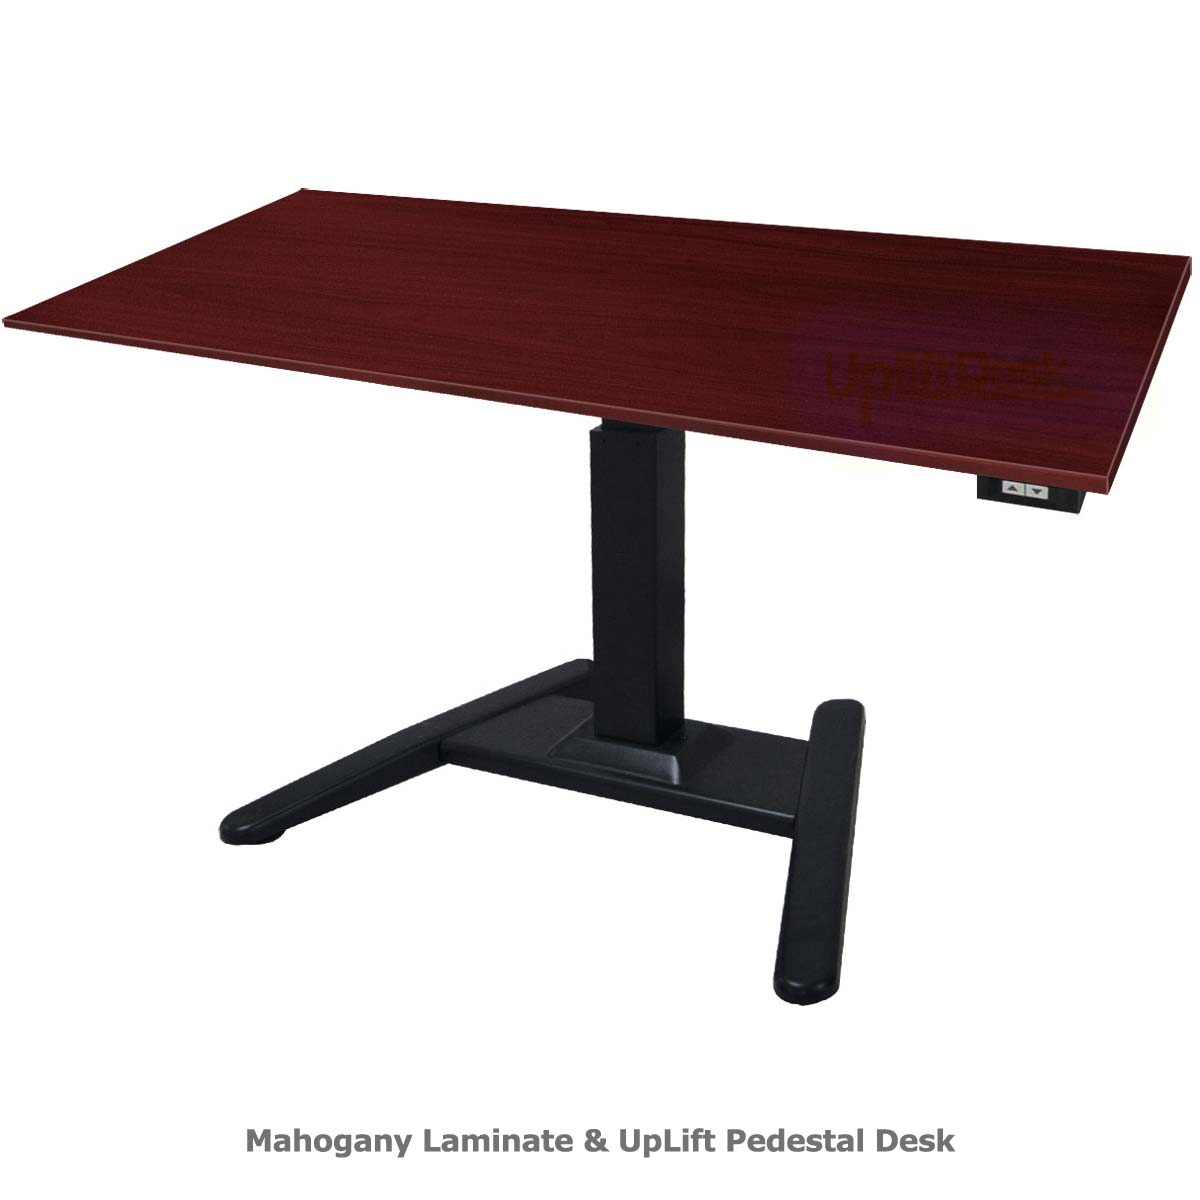 Uplift desk - Online shop promotion